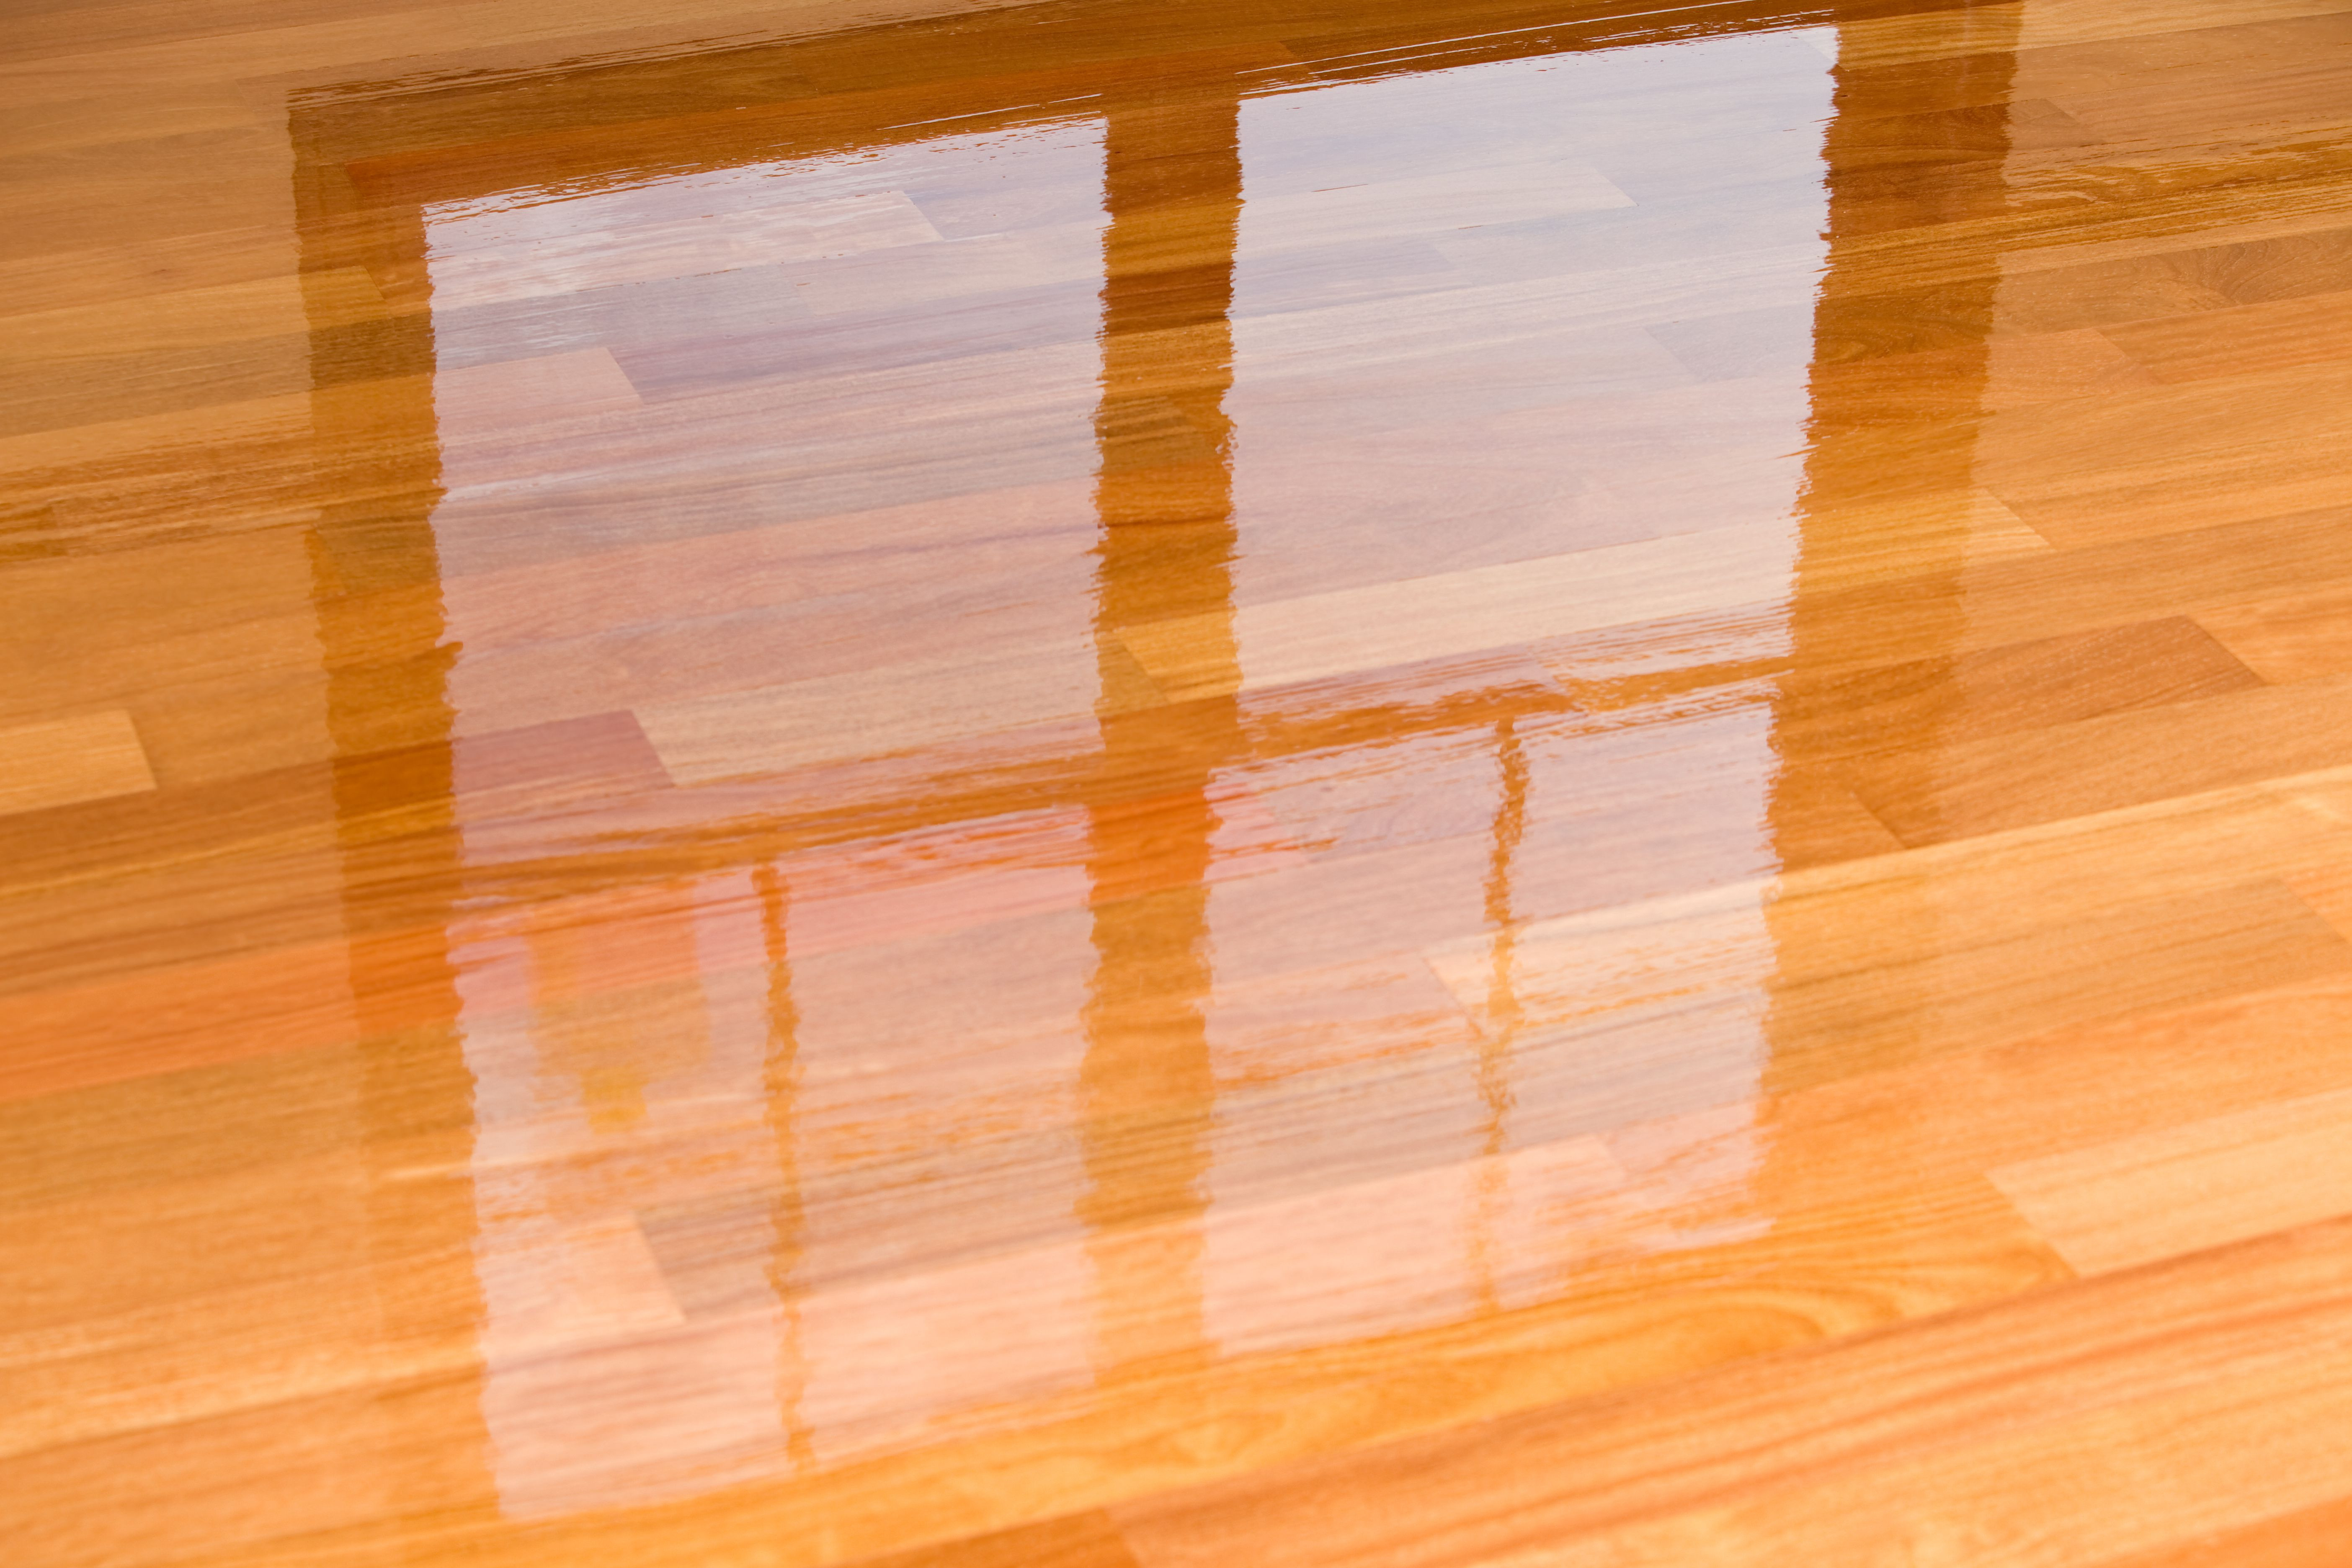 how to clean bruce engineered hardwood floors of guide to laminate flooring water and damage repair within wet polyurethane on new hardwood floor with window reflection 183846705 582e34da3df78c6f6a403968